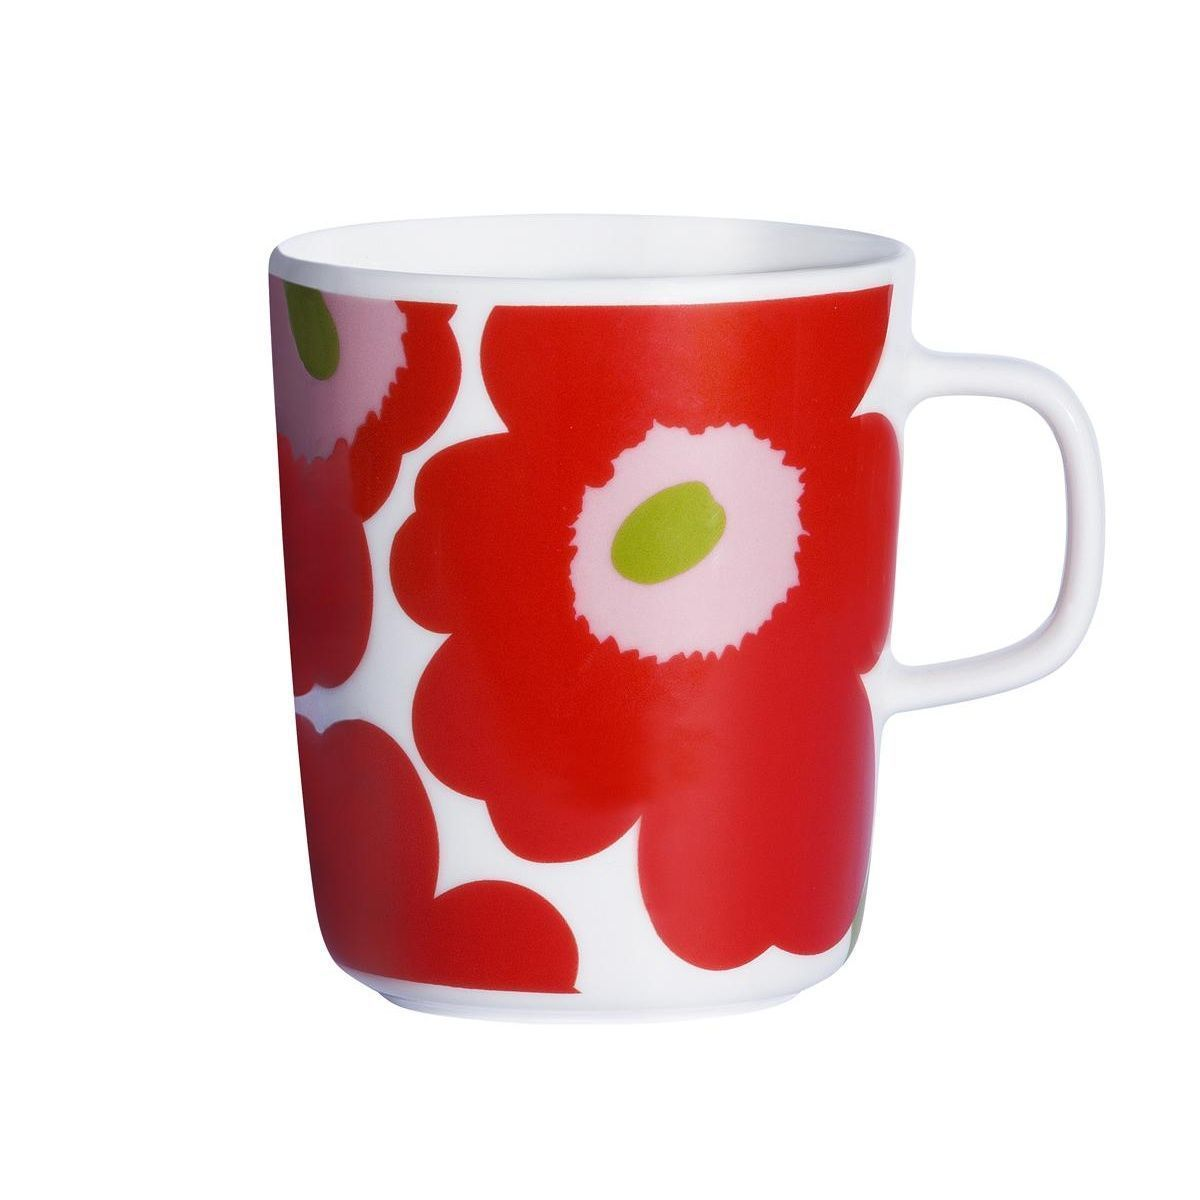 marimekko oiva unikko tasse caf marimekko. Black Bedroom Furniture Sets. Home Design Ideas